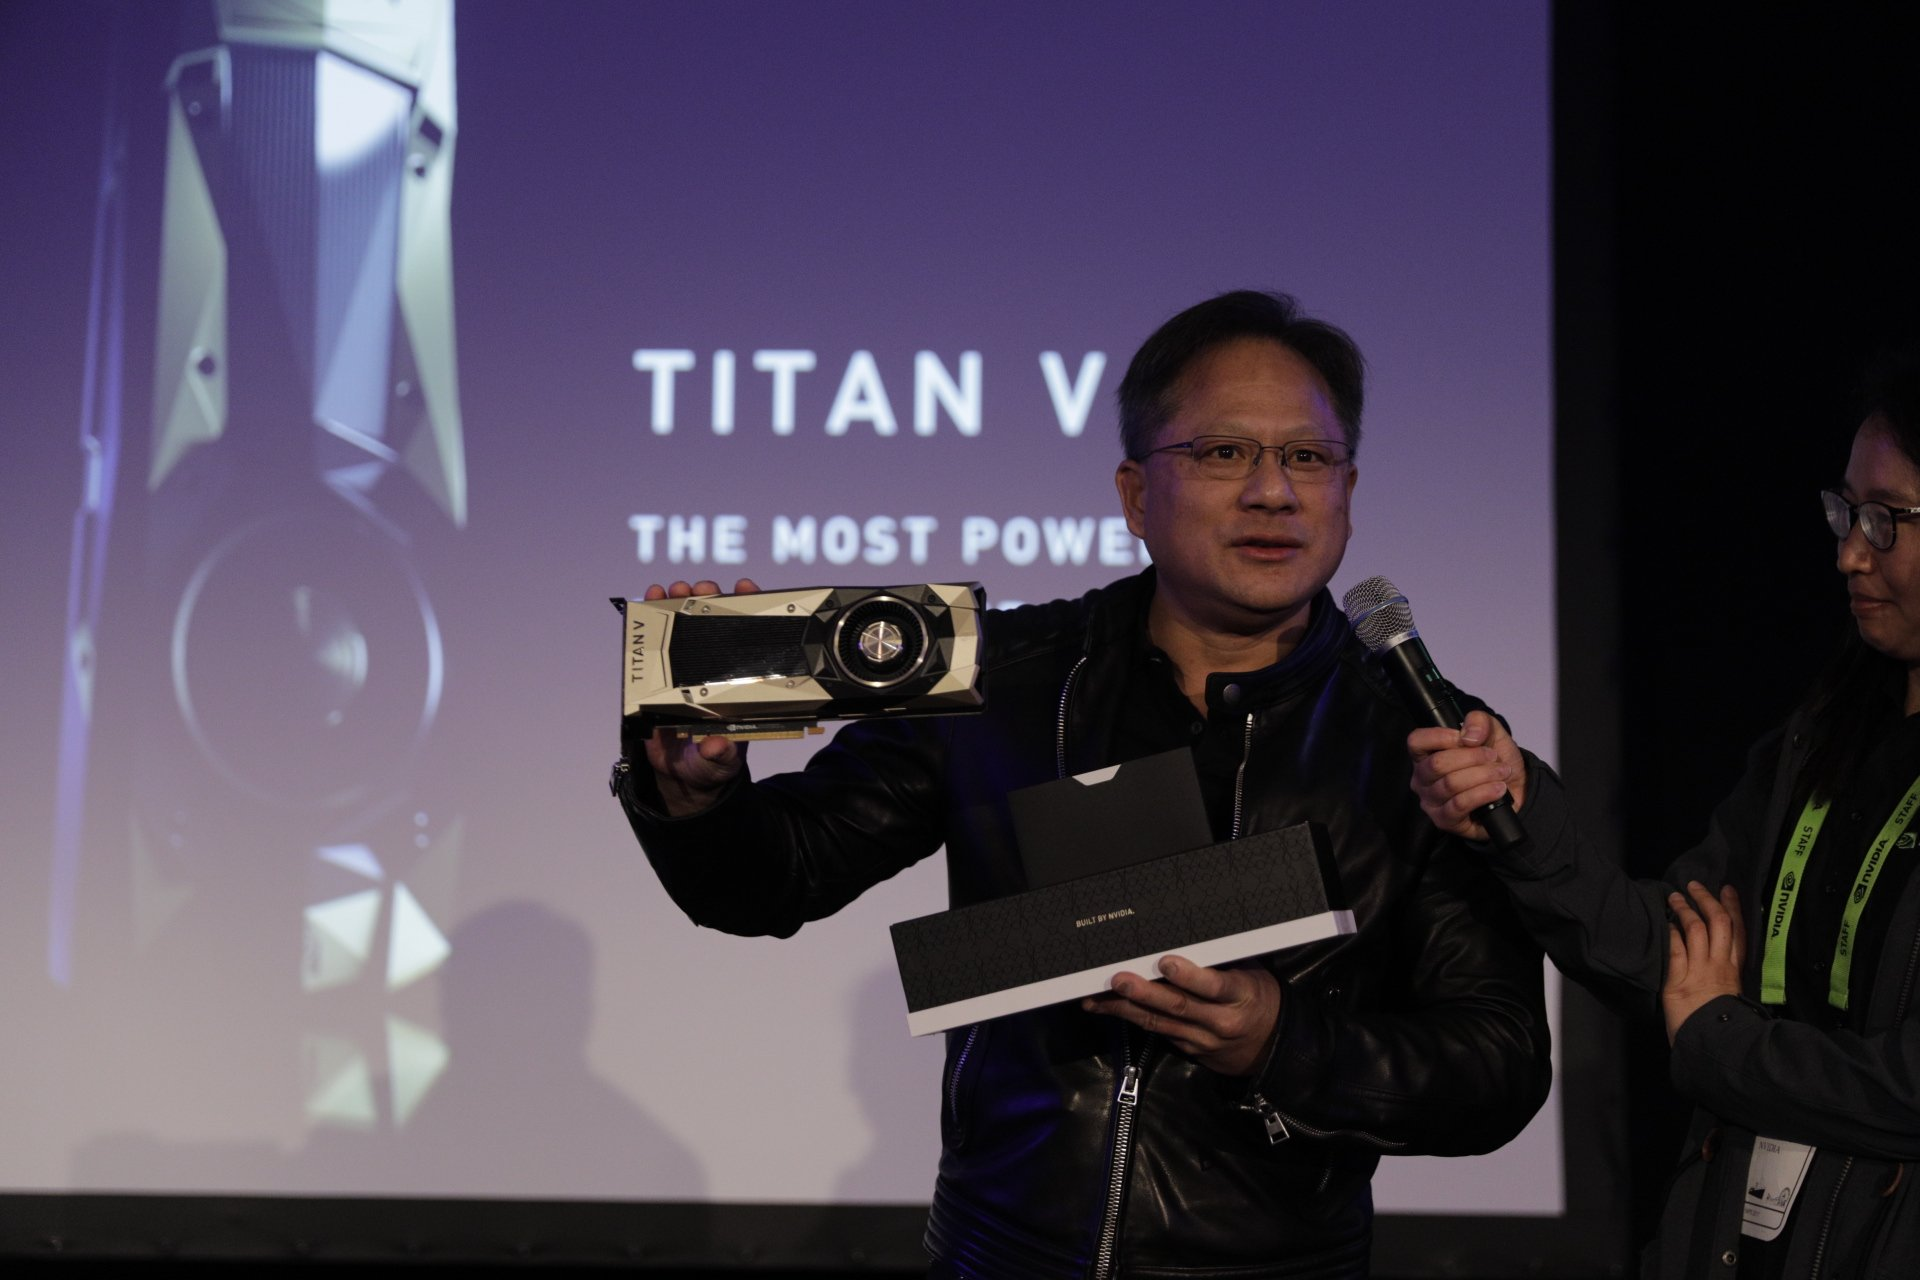 Nvidia's Titan V giant: $3000 buys you 'most powerful PC GPU ever'